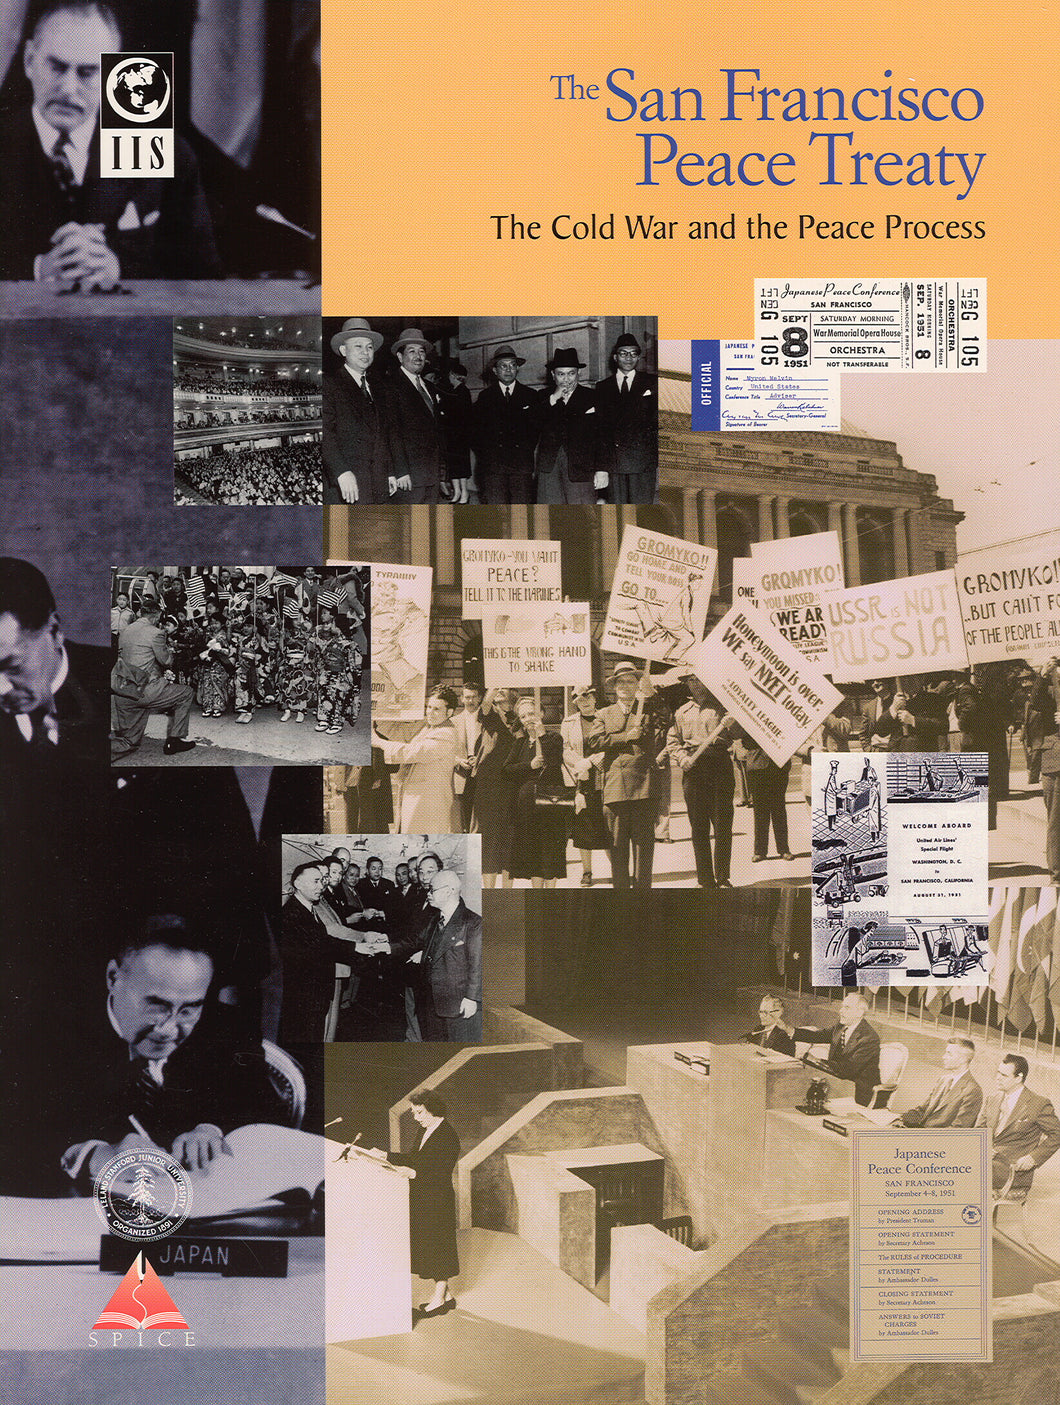 San Francisco Peace Treaty: The Cold War and the Peace Process